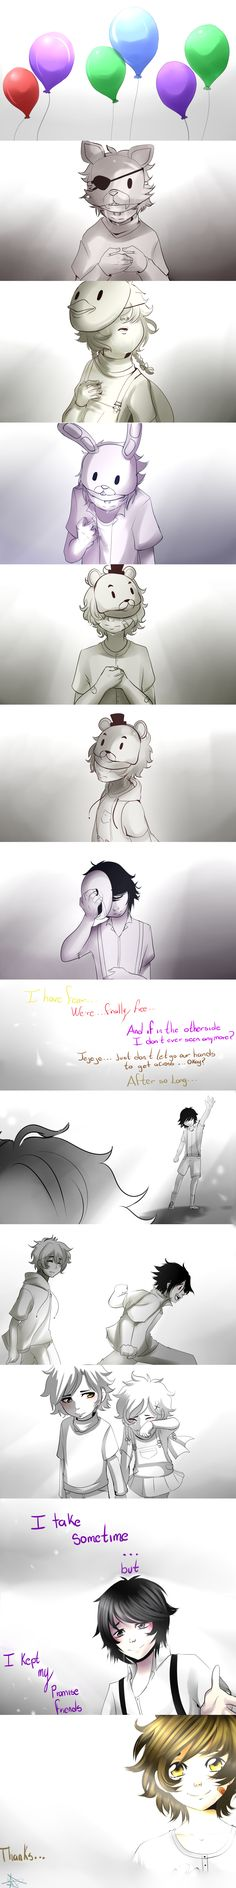 sadness and... by Kamik91.deviantart.com on @DeviantArt